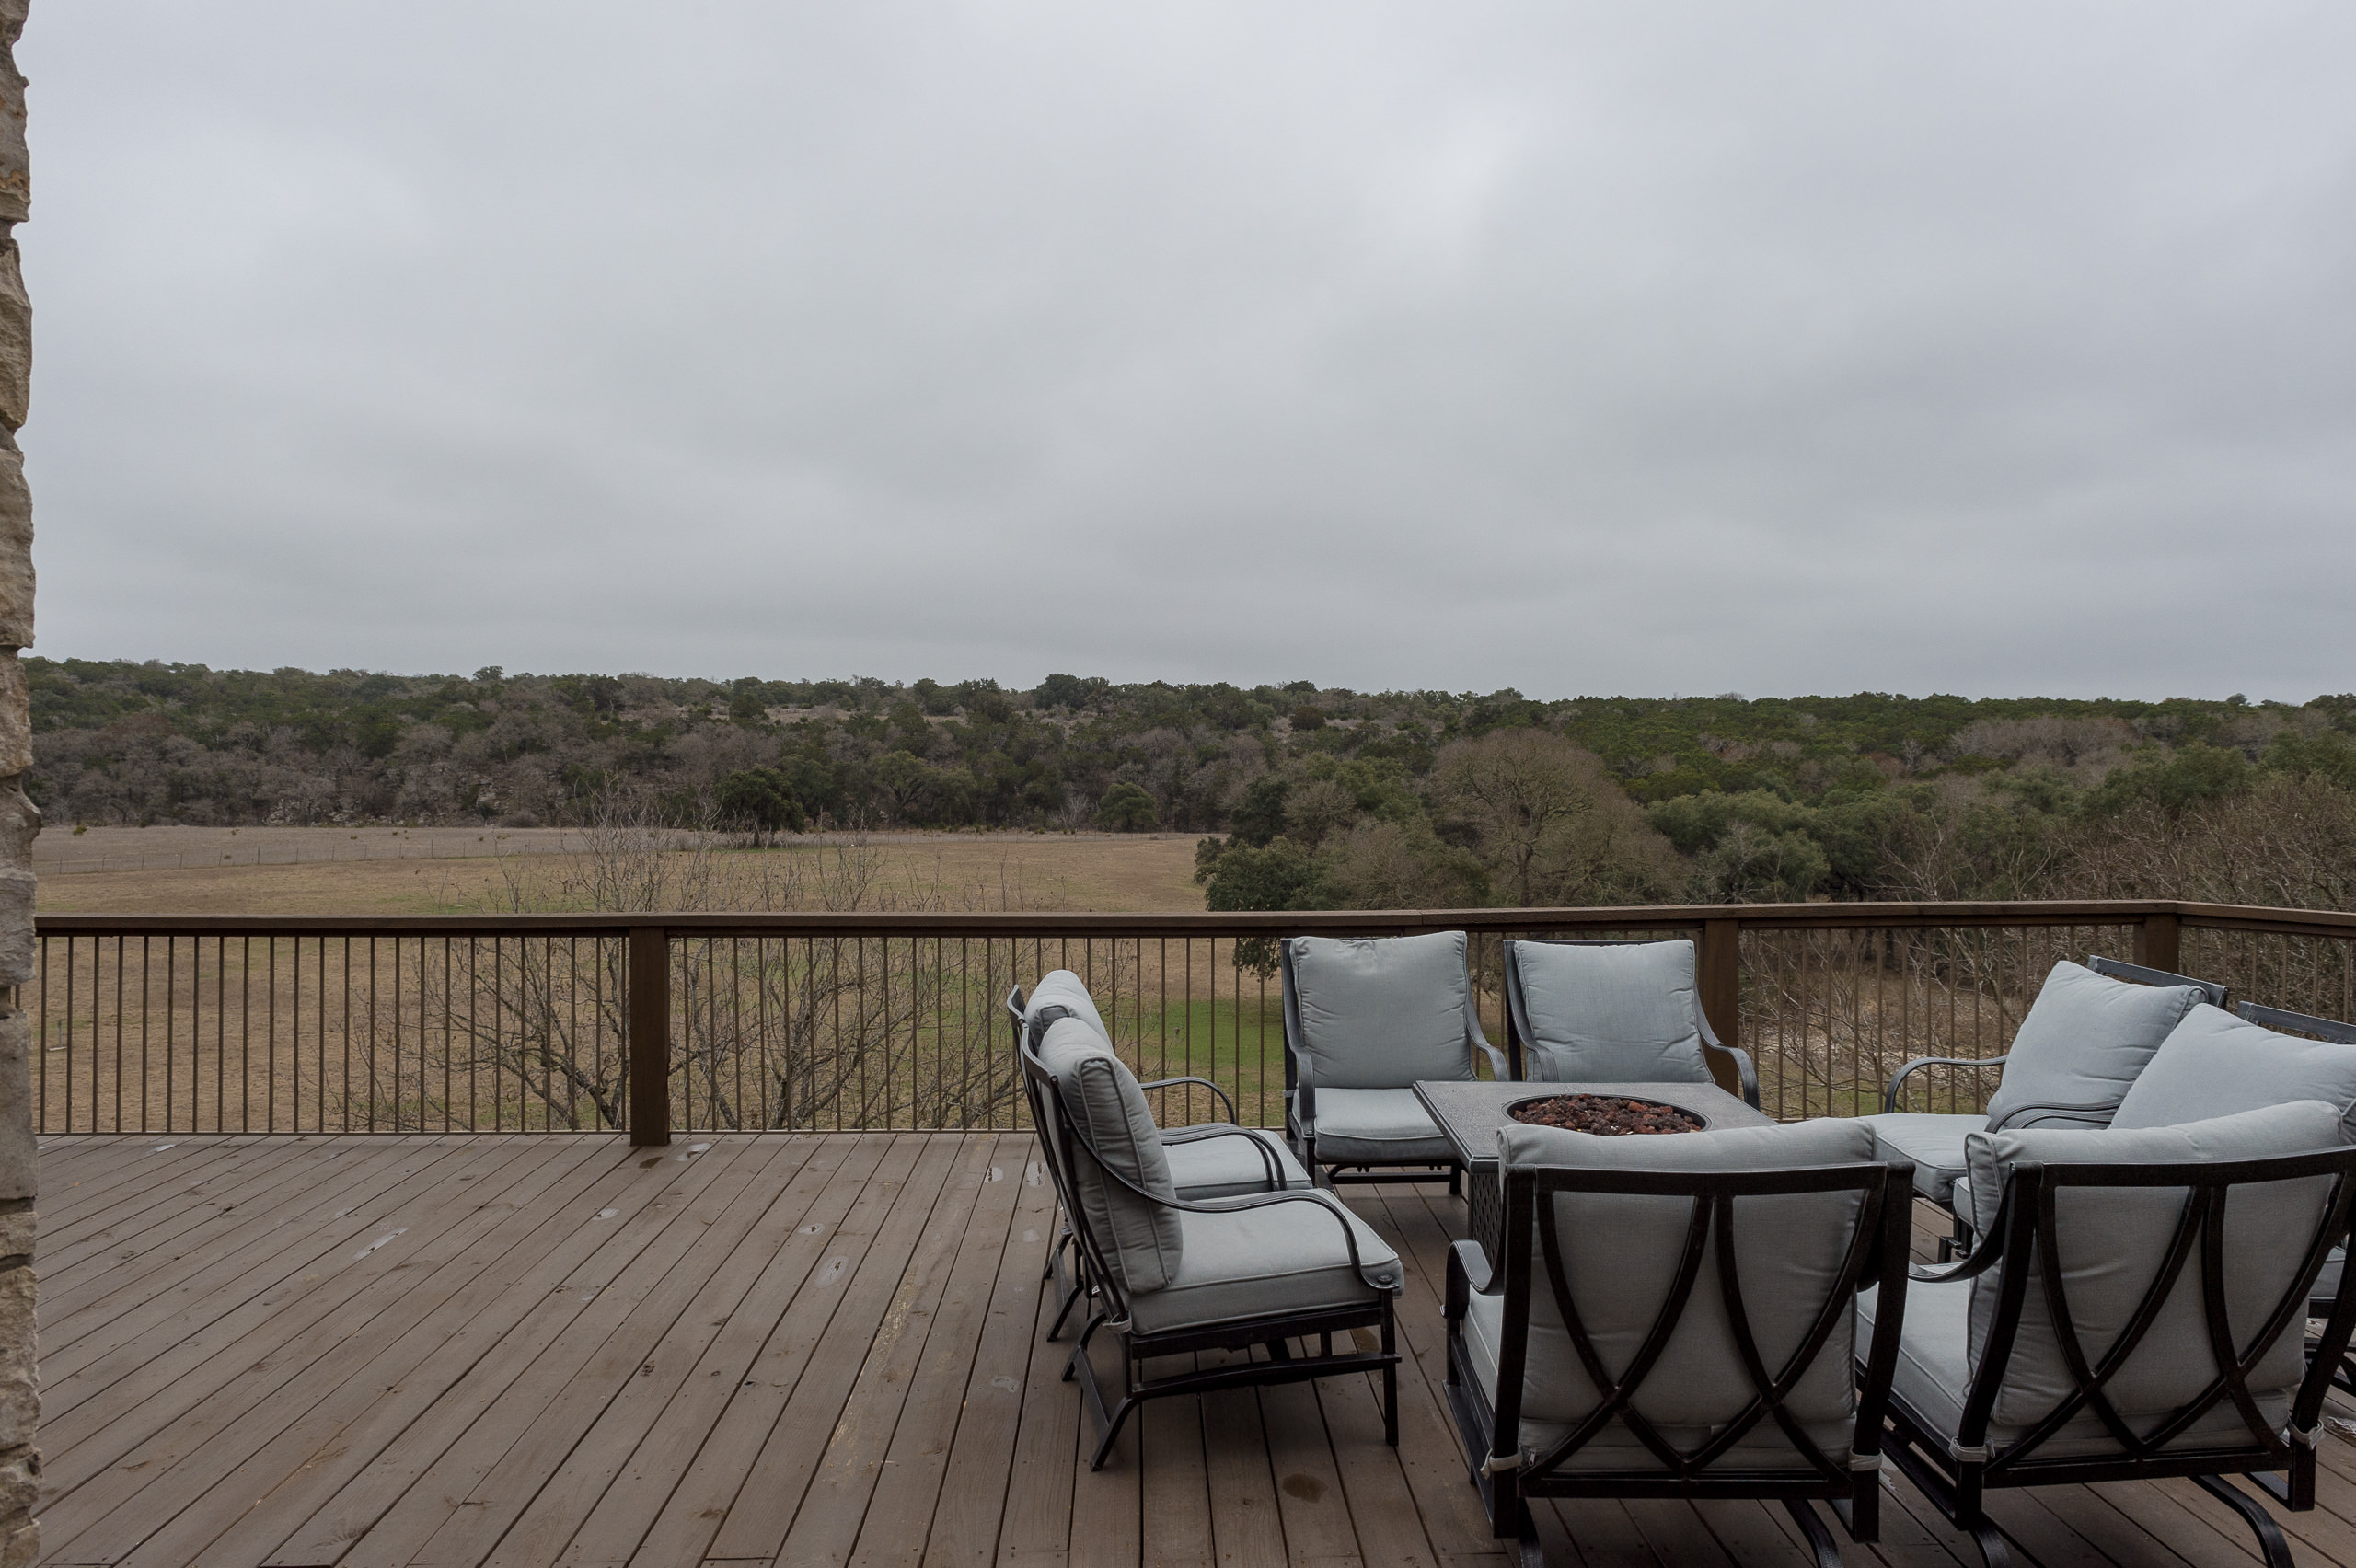 cw-hill-country-ranch-texas-hill-country-wedding-venue-in-boerne-_4S26154